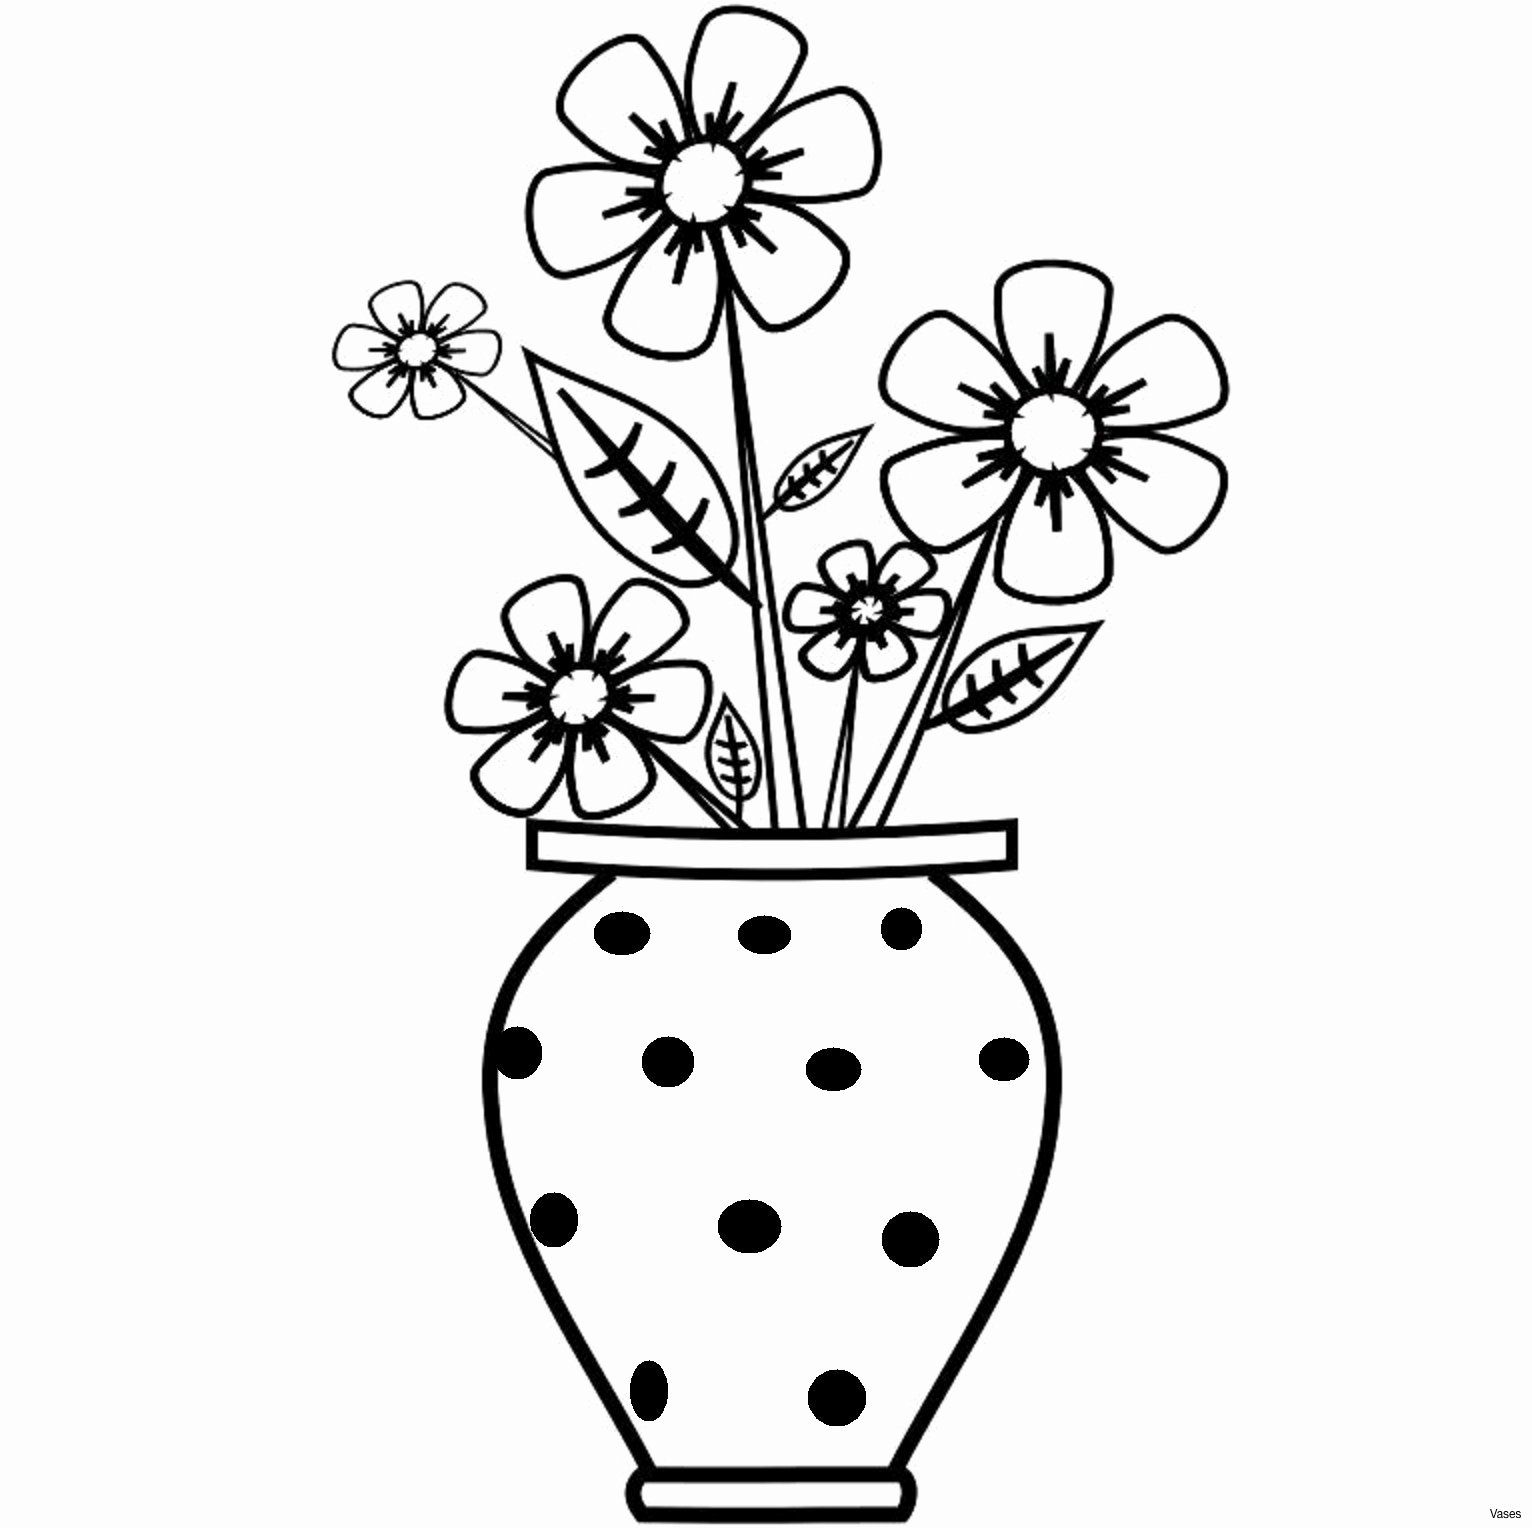 Coloring 8 Flowers Best Of Vase Pencil Drawing At Getdrawings In 2020 Flower Drawing For Kids Easy Flower Drawings Flower Vase Drawing